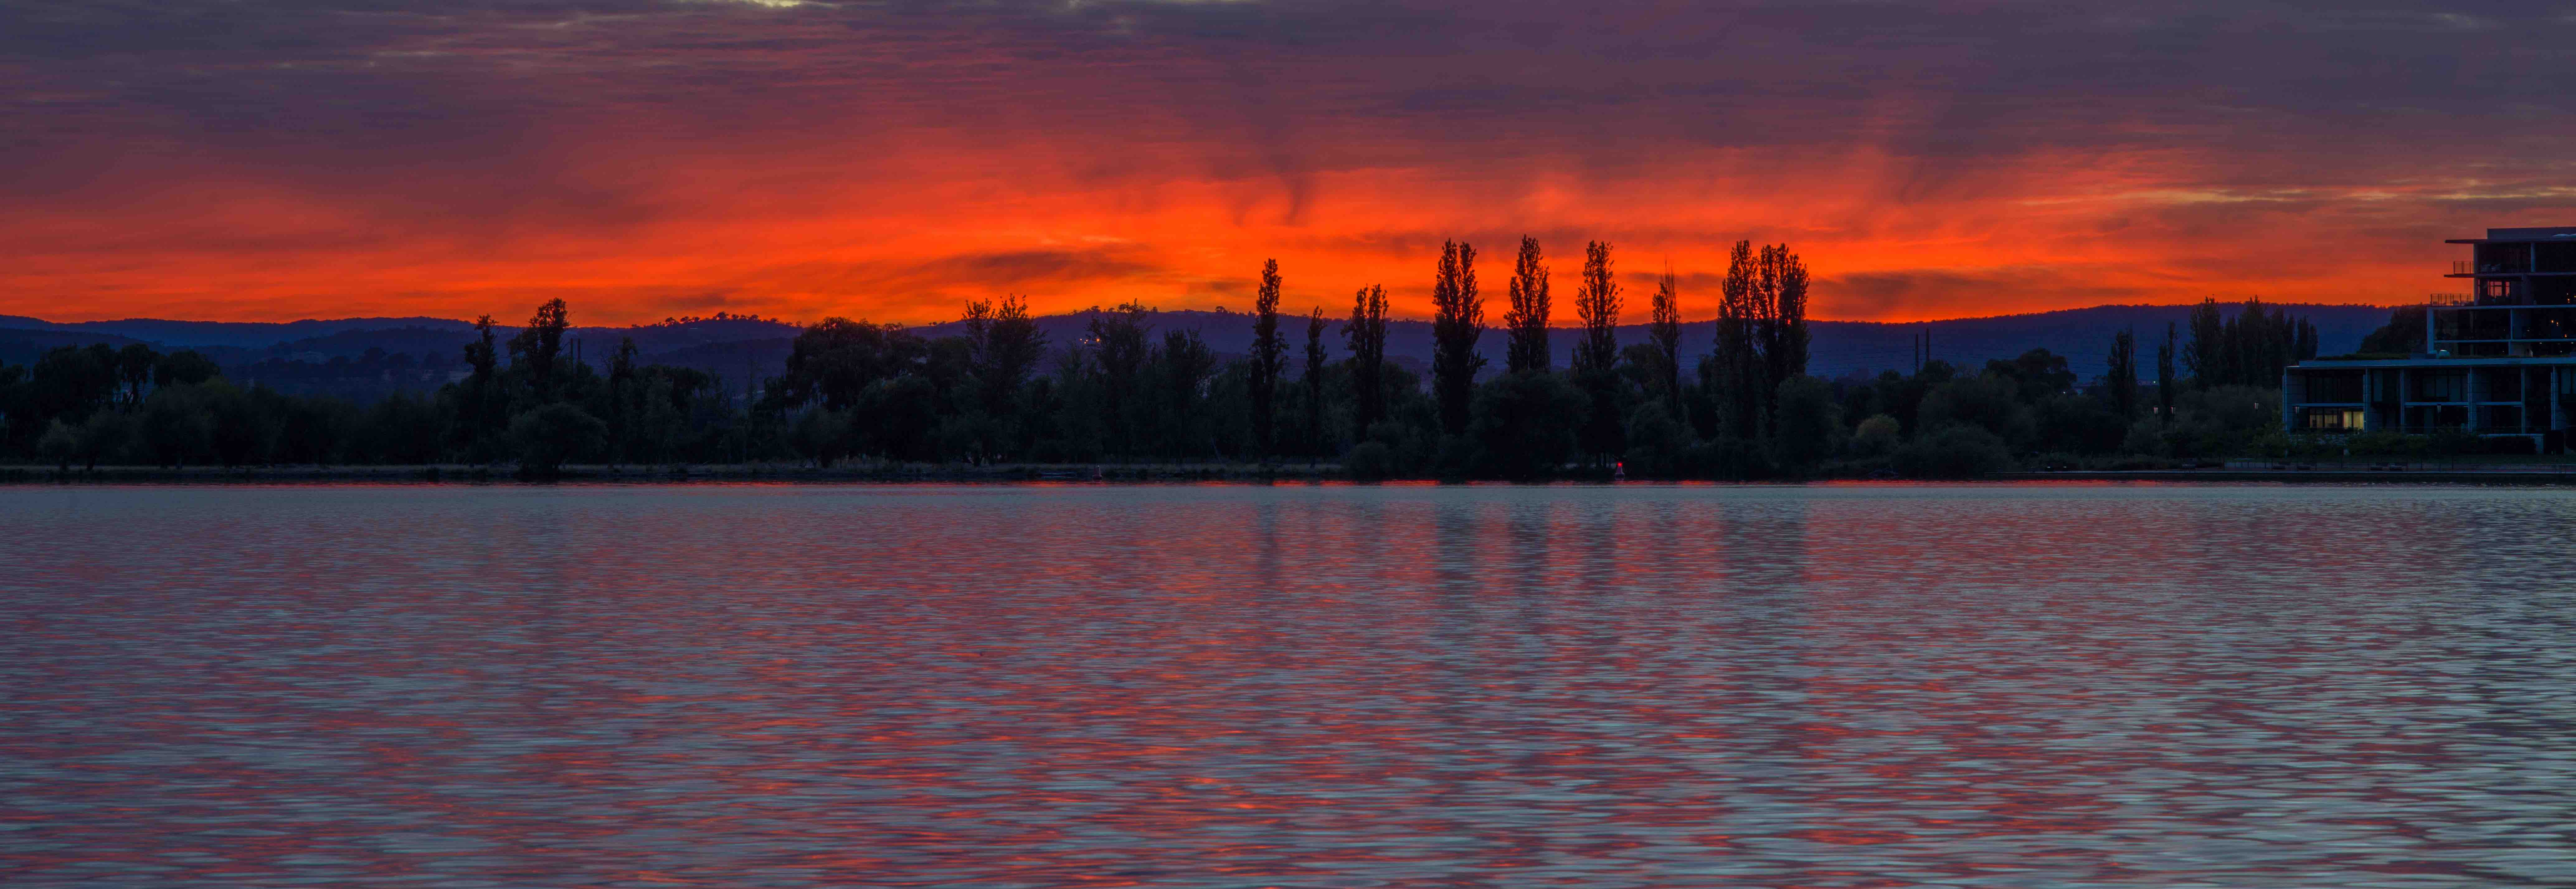 Sunrise in Canberra (Photo: MomentsForZen/Flickr)